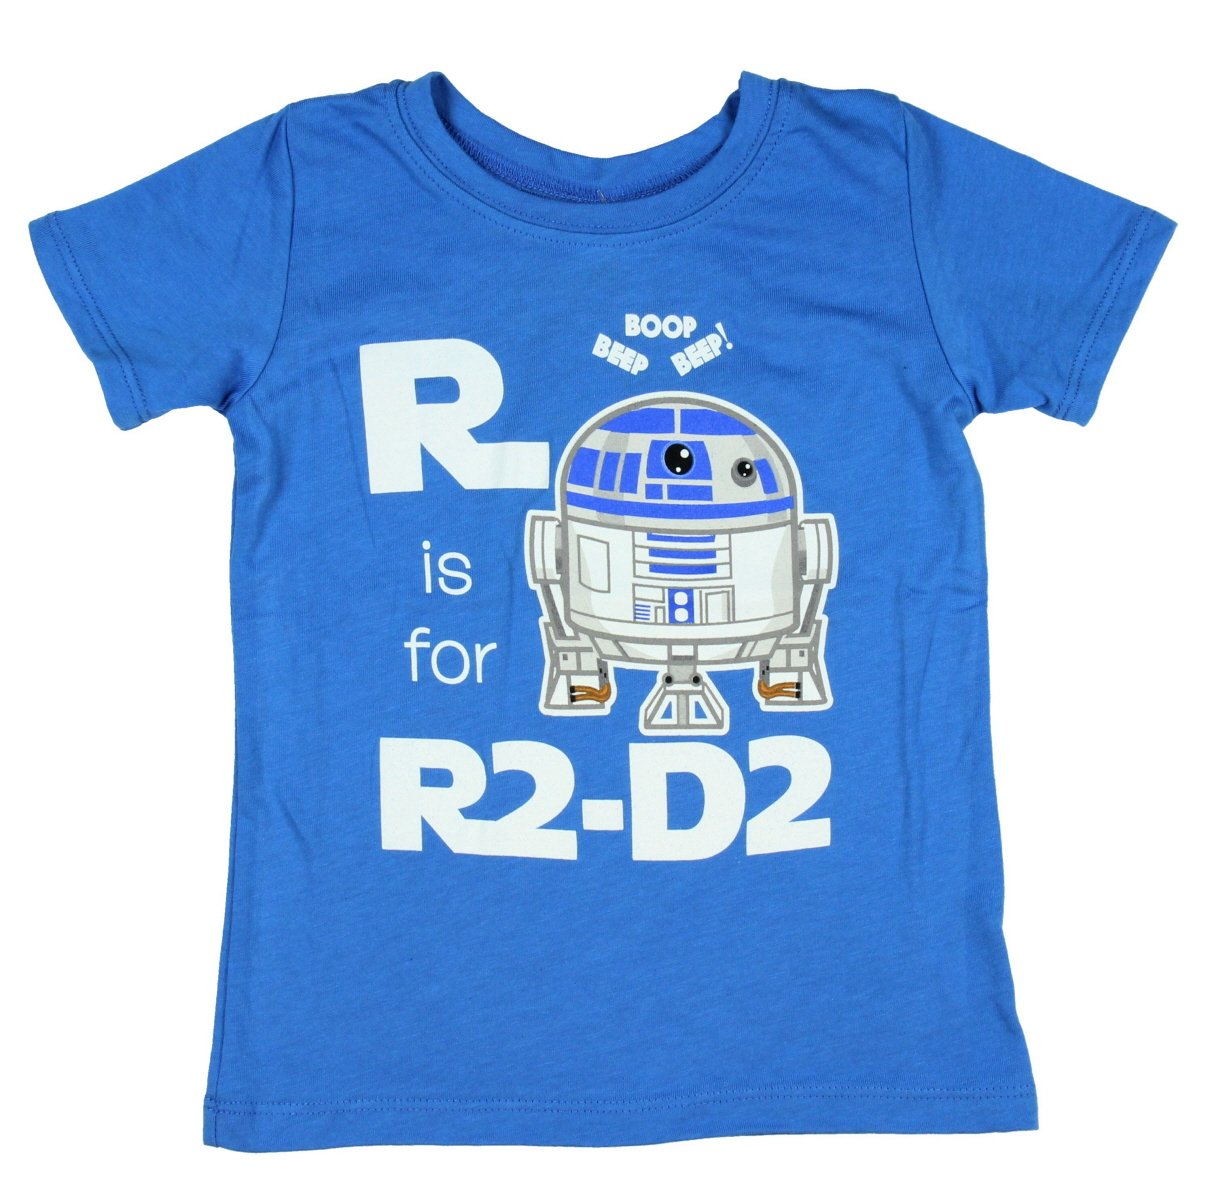 Star Wars R is for R2-D2 Toddler T-Shirt - Blue (5/6T)